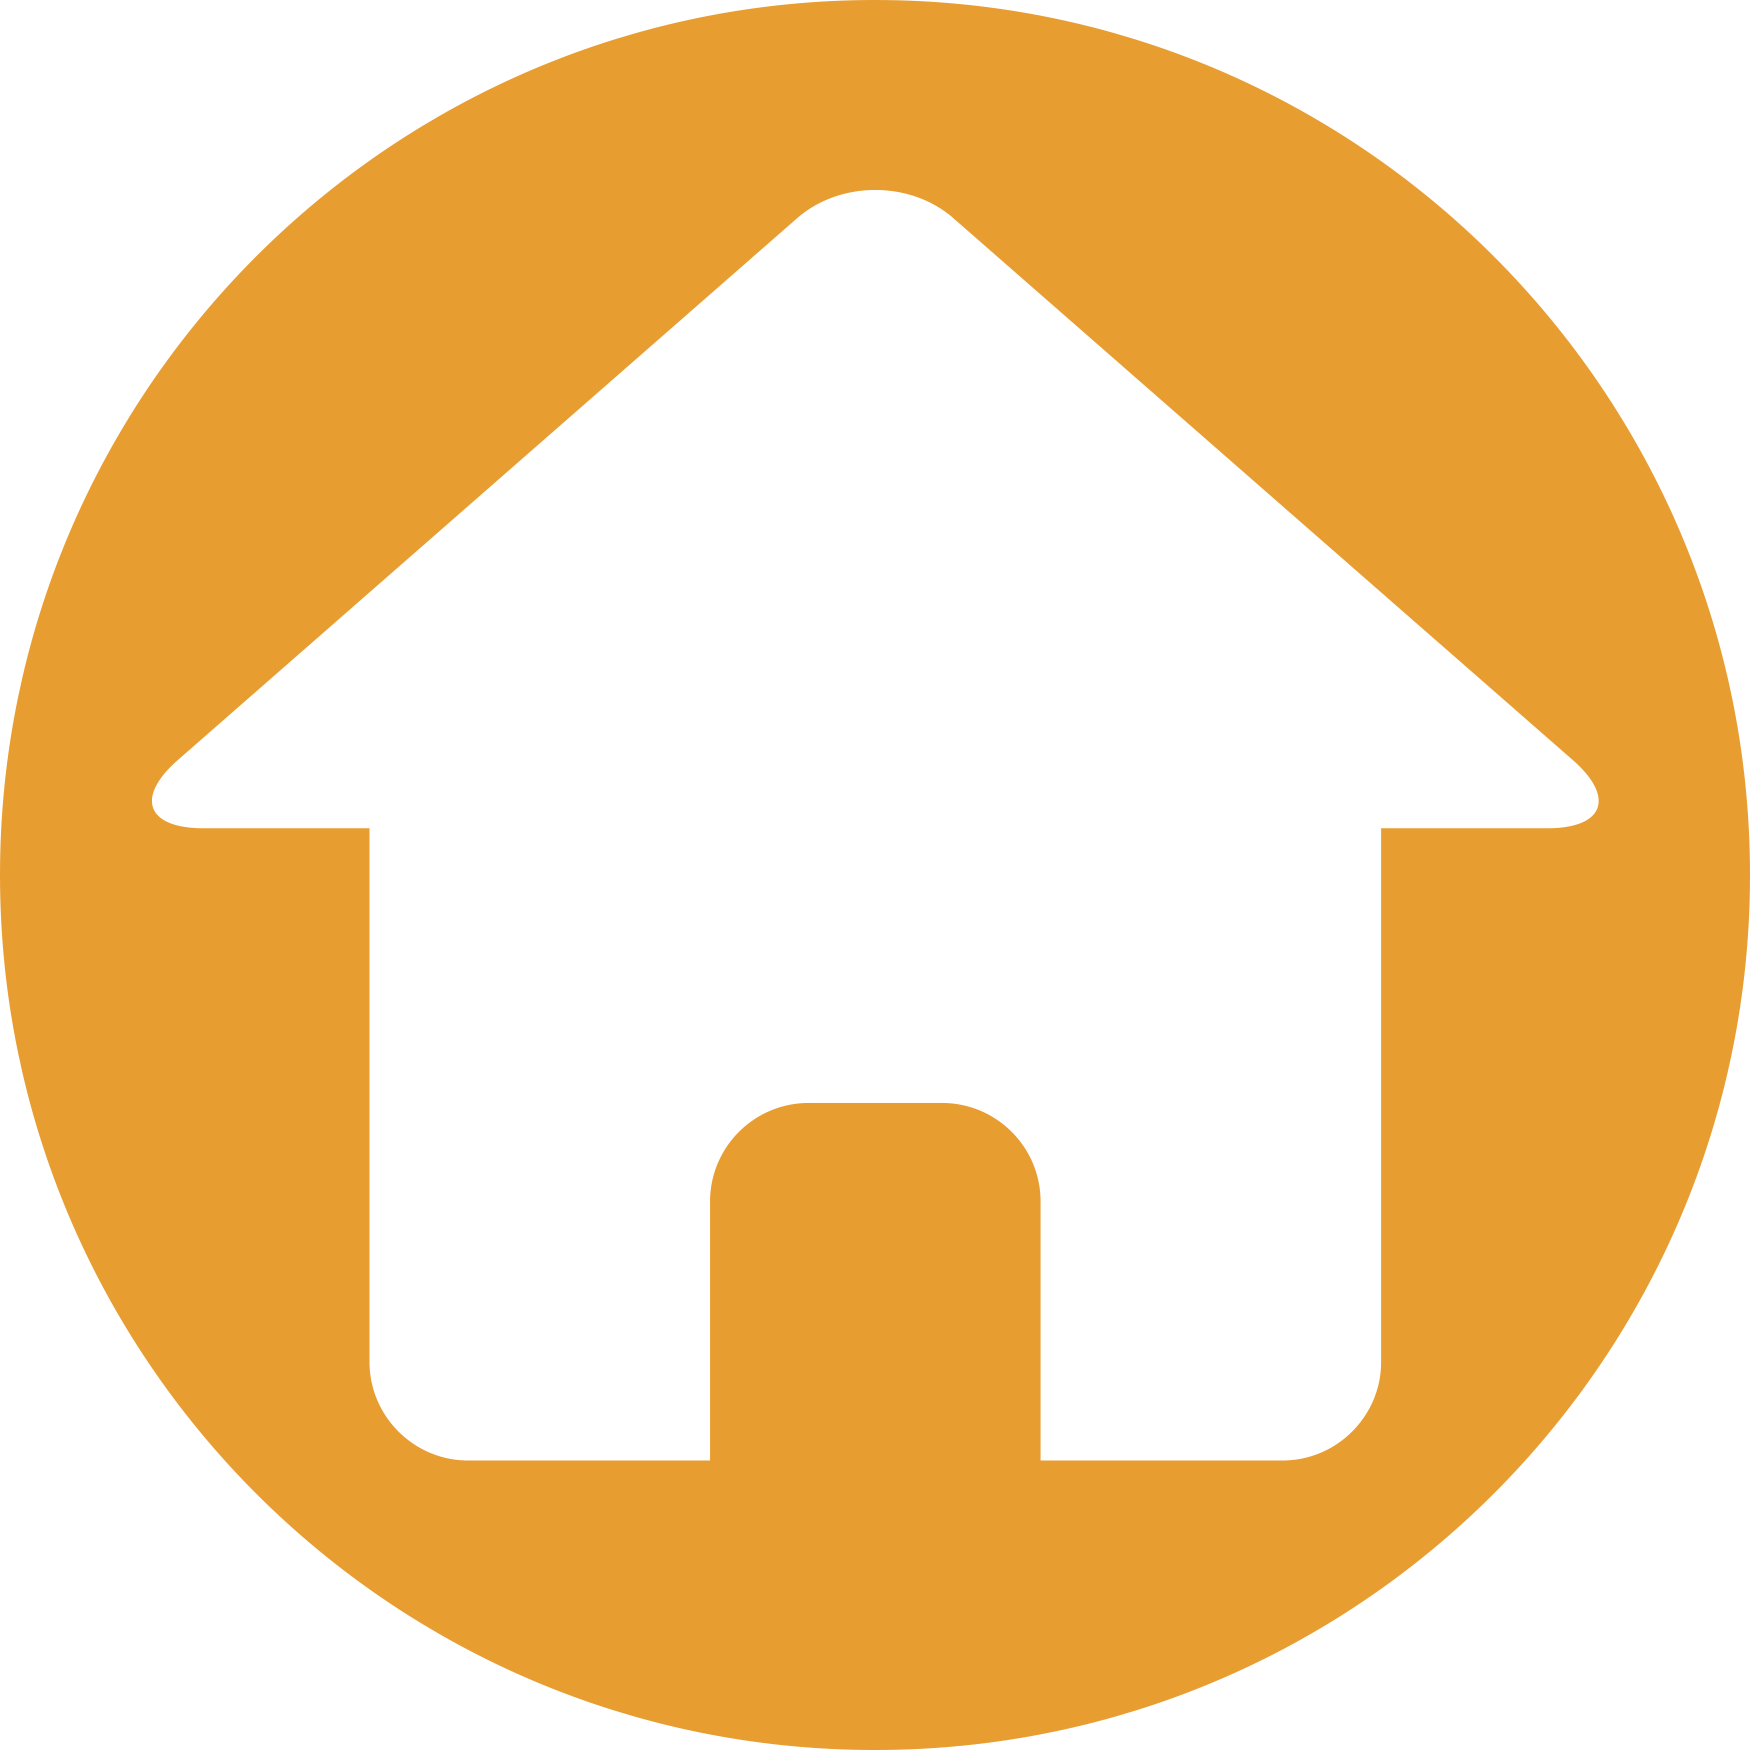 Free Download Of House Icon Clipart